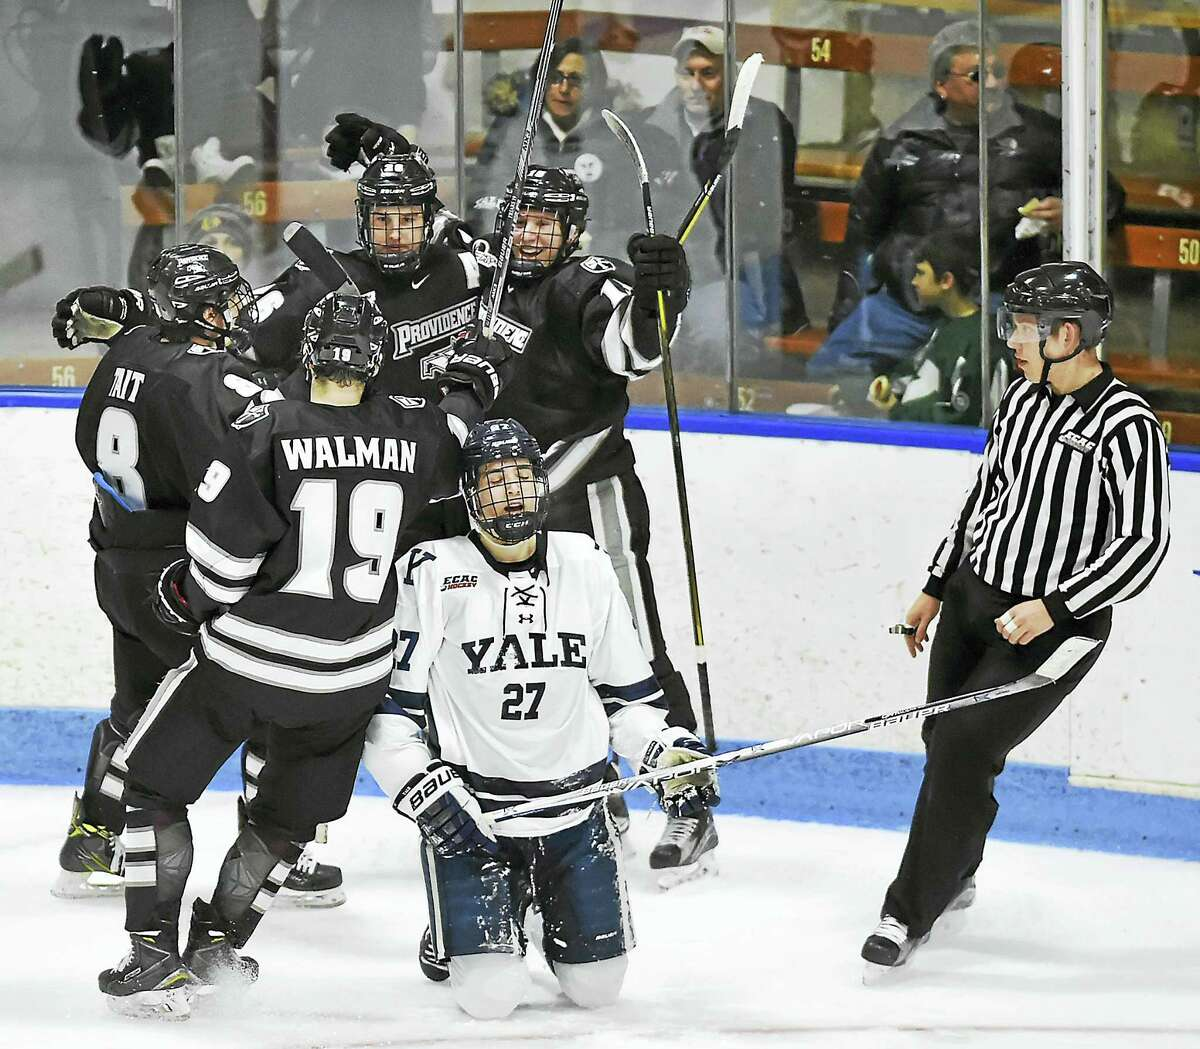 Providence left wing Josh Wilkins (15) celebrates after scoring in the second period after the puck is deflected off Yale forward Luke Stevens (27) in a 3-1 win over the Bulldogs at the Ingalls Rink.